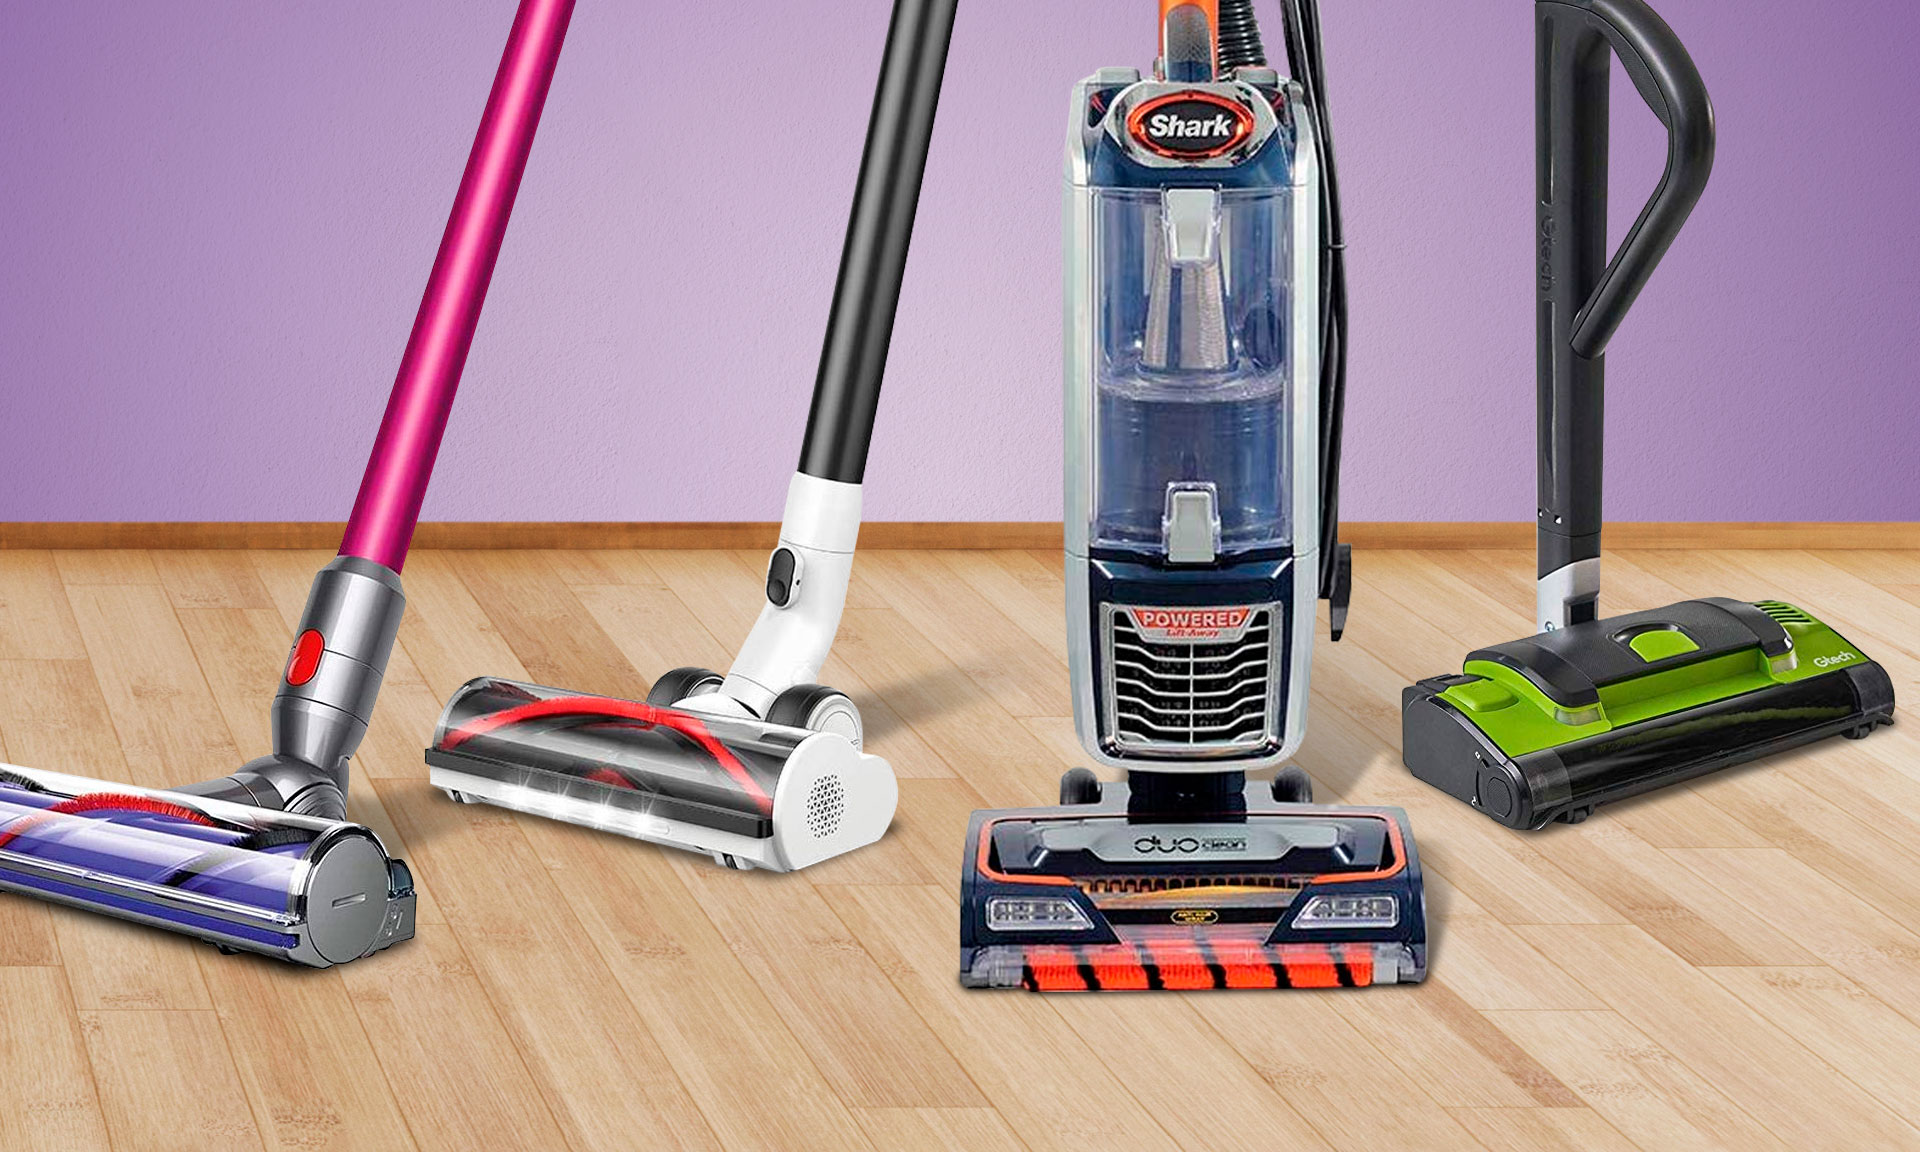 5 cool new vacuum cleaner features to look out for – Which